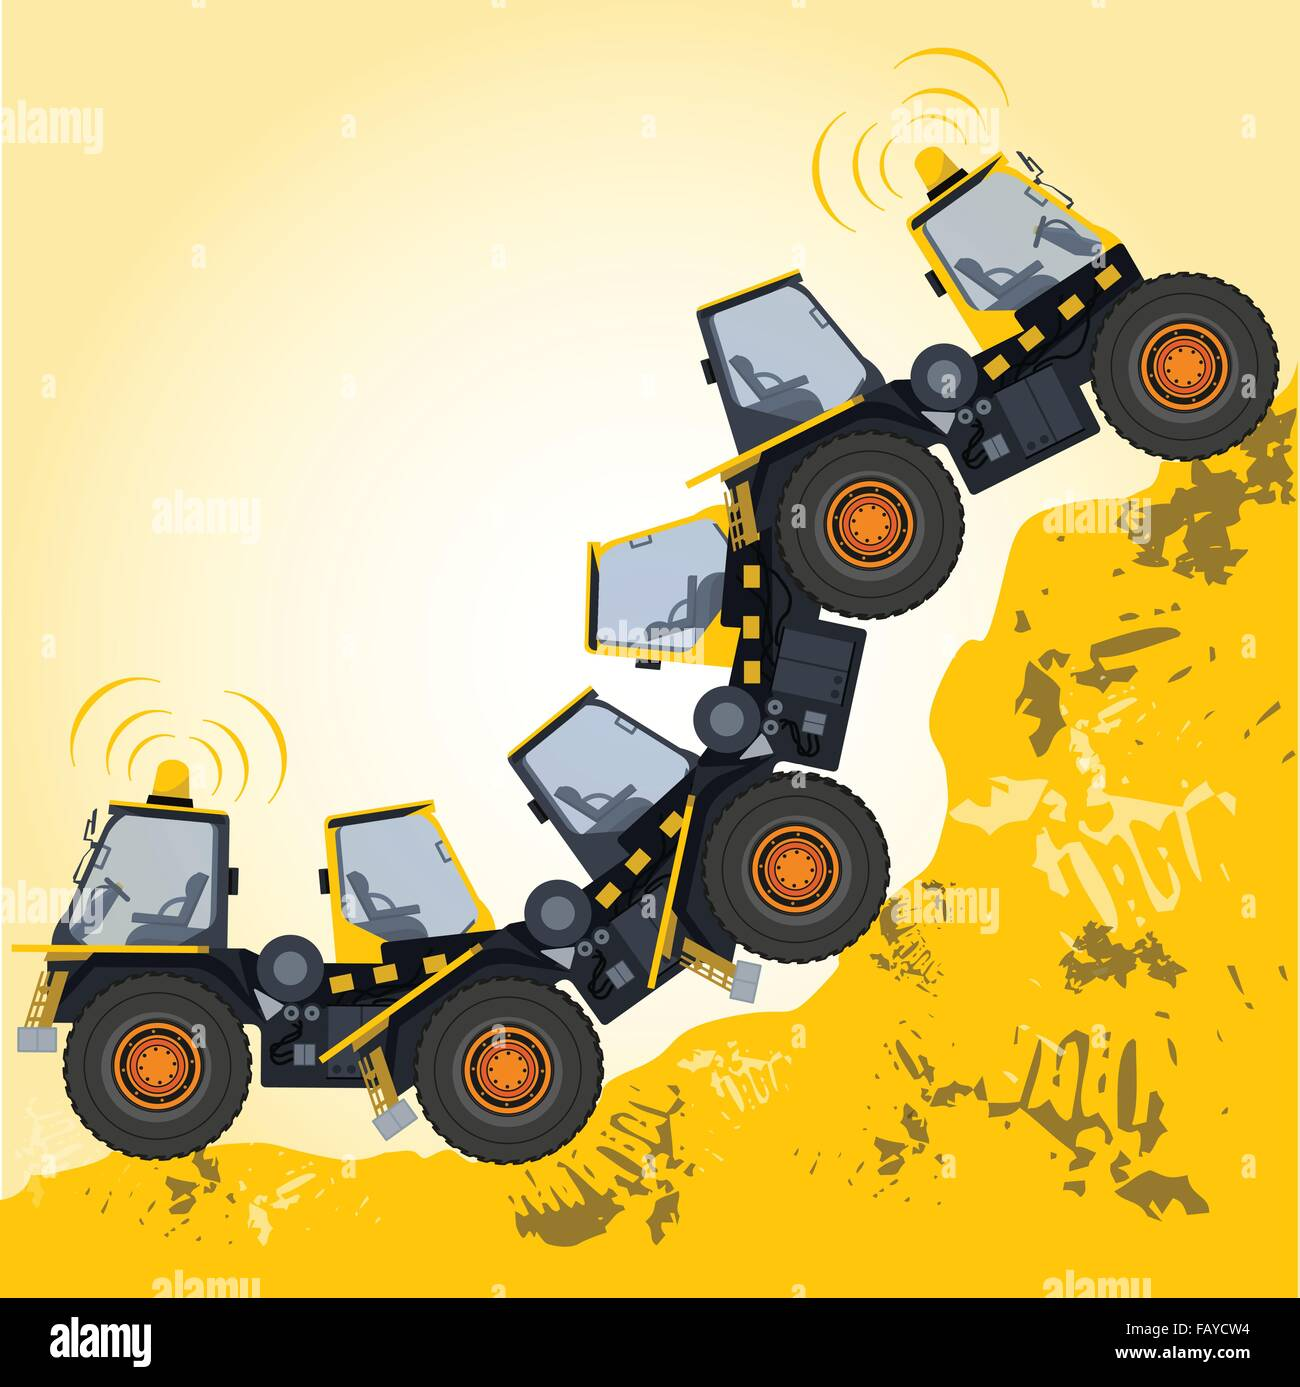 Bizarre machine robot build from ground works yellow vehicles Construction Equipment for building - Truck Digger - Stock Image